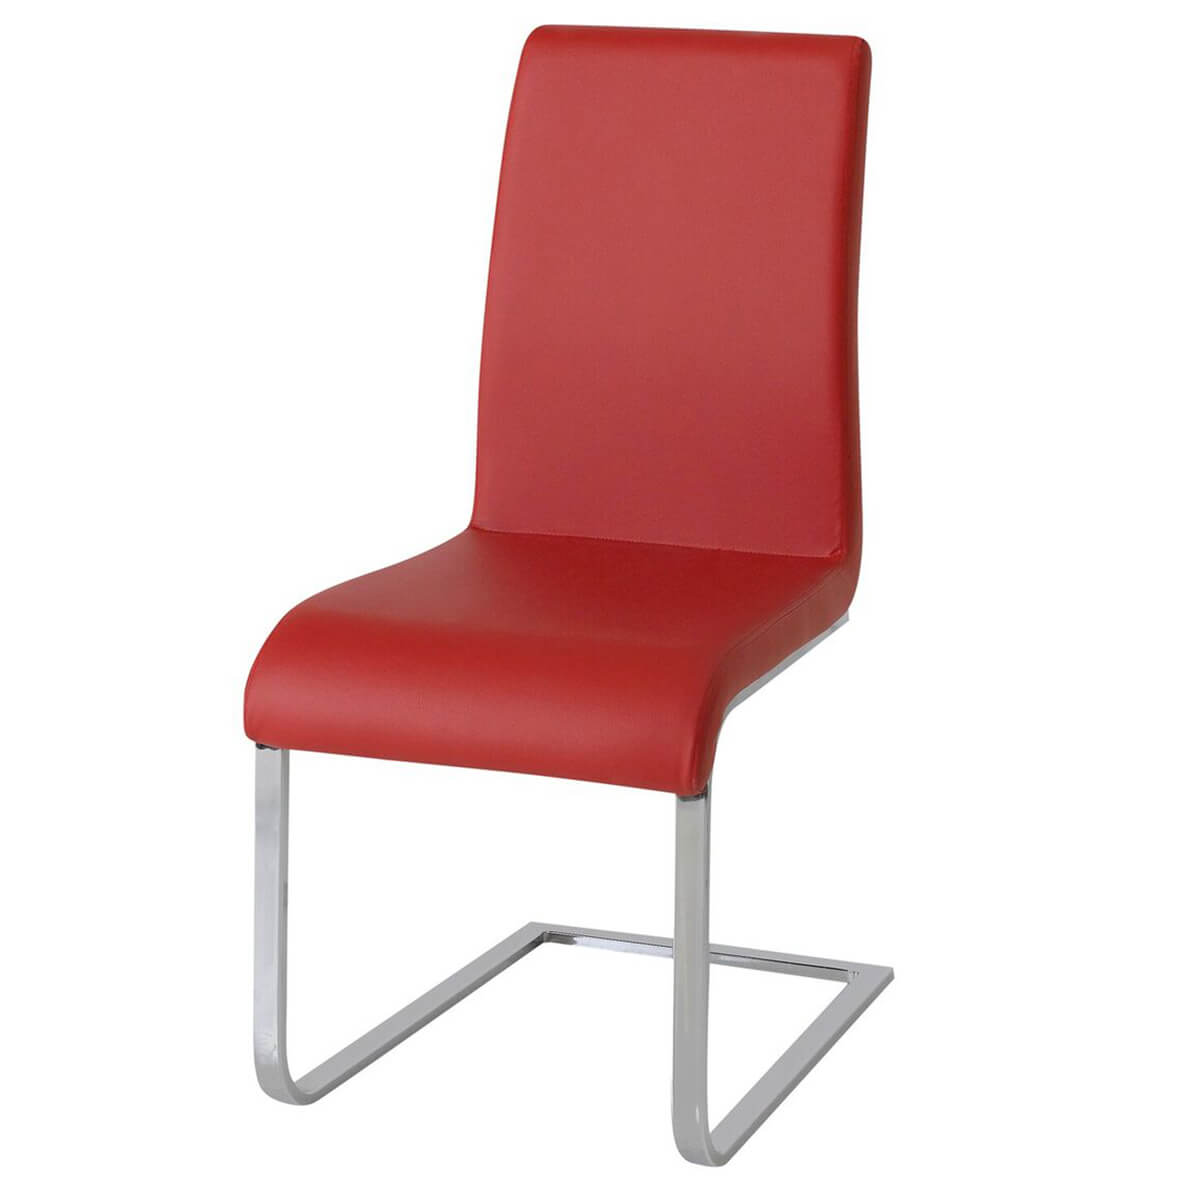 faux leather dining chairs walmart massage chair hue multi coloured red fads